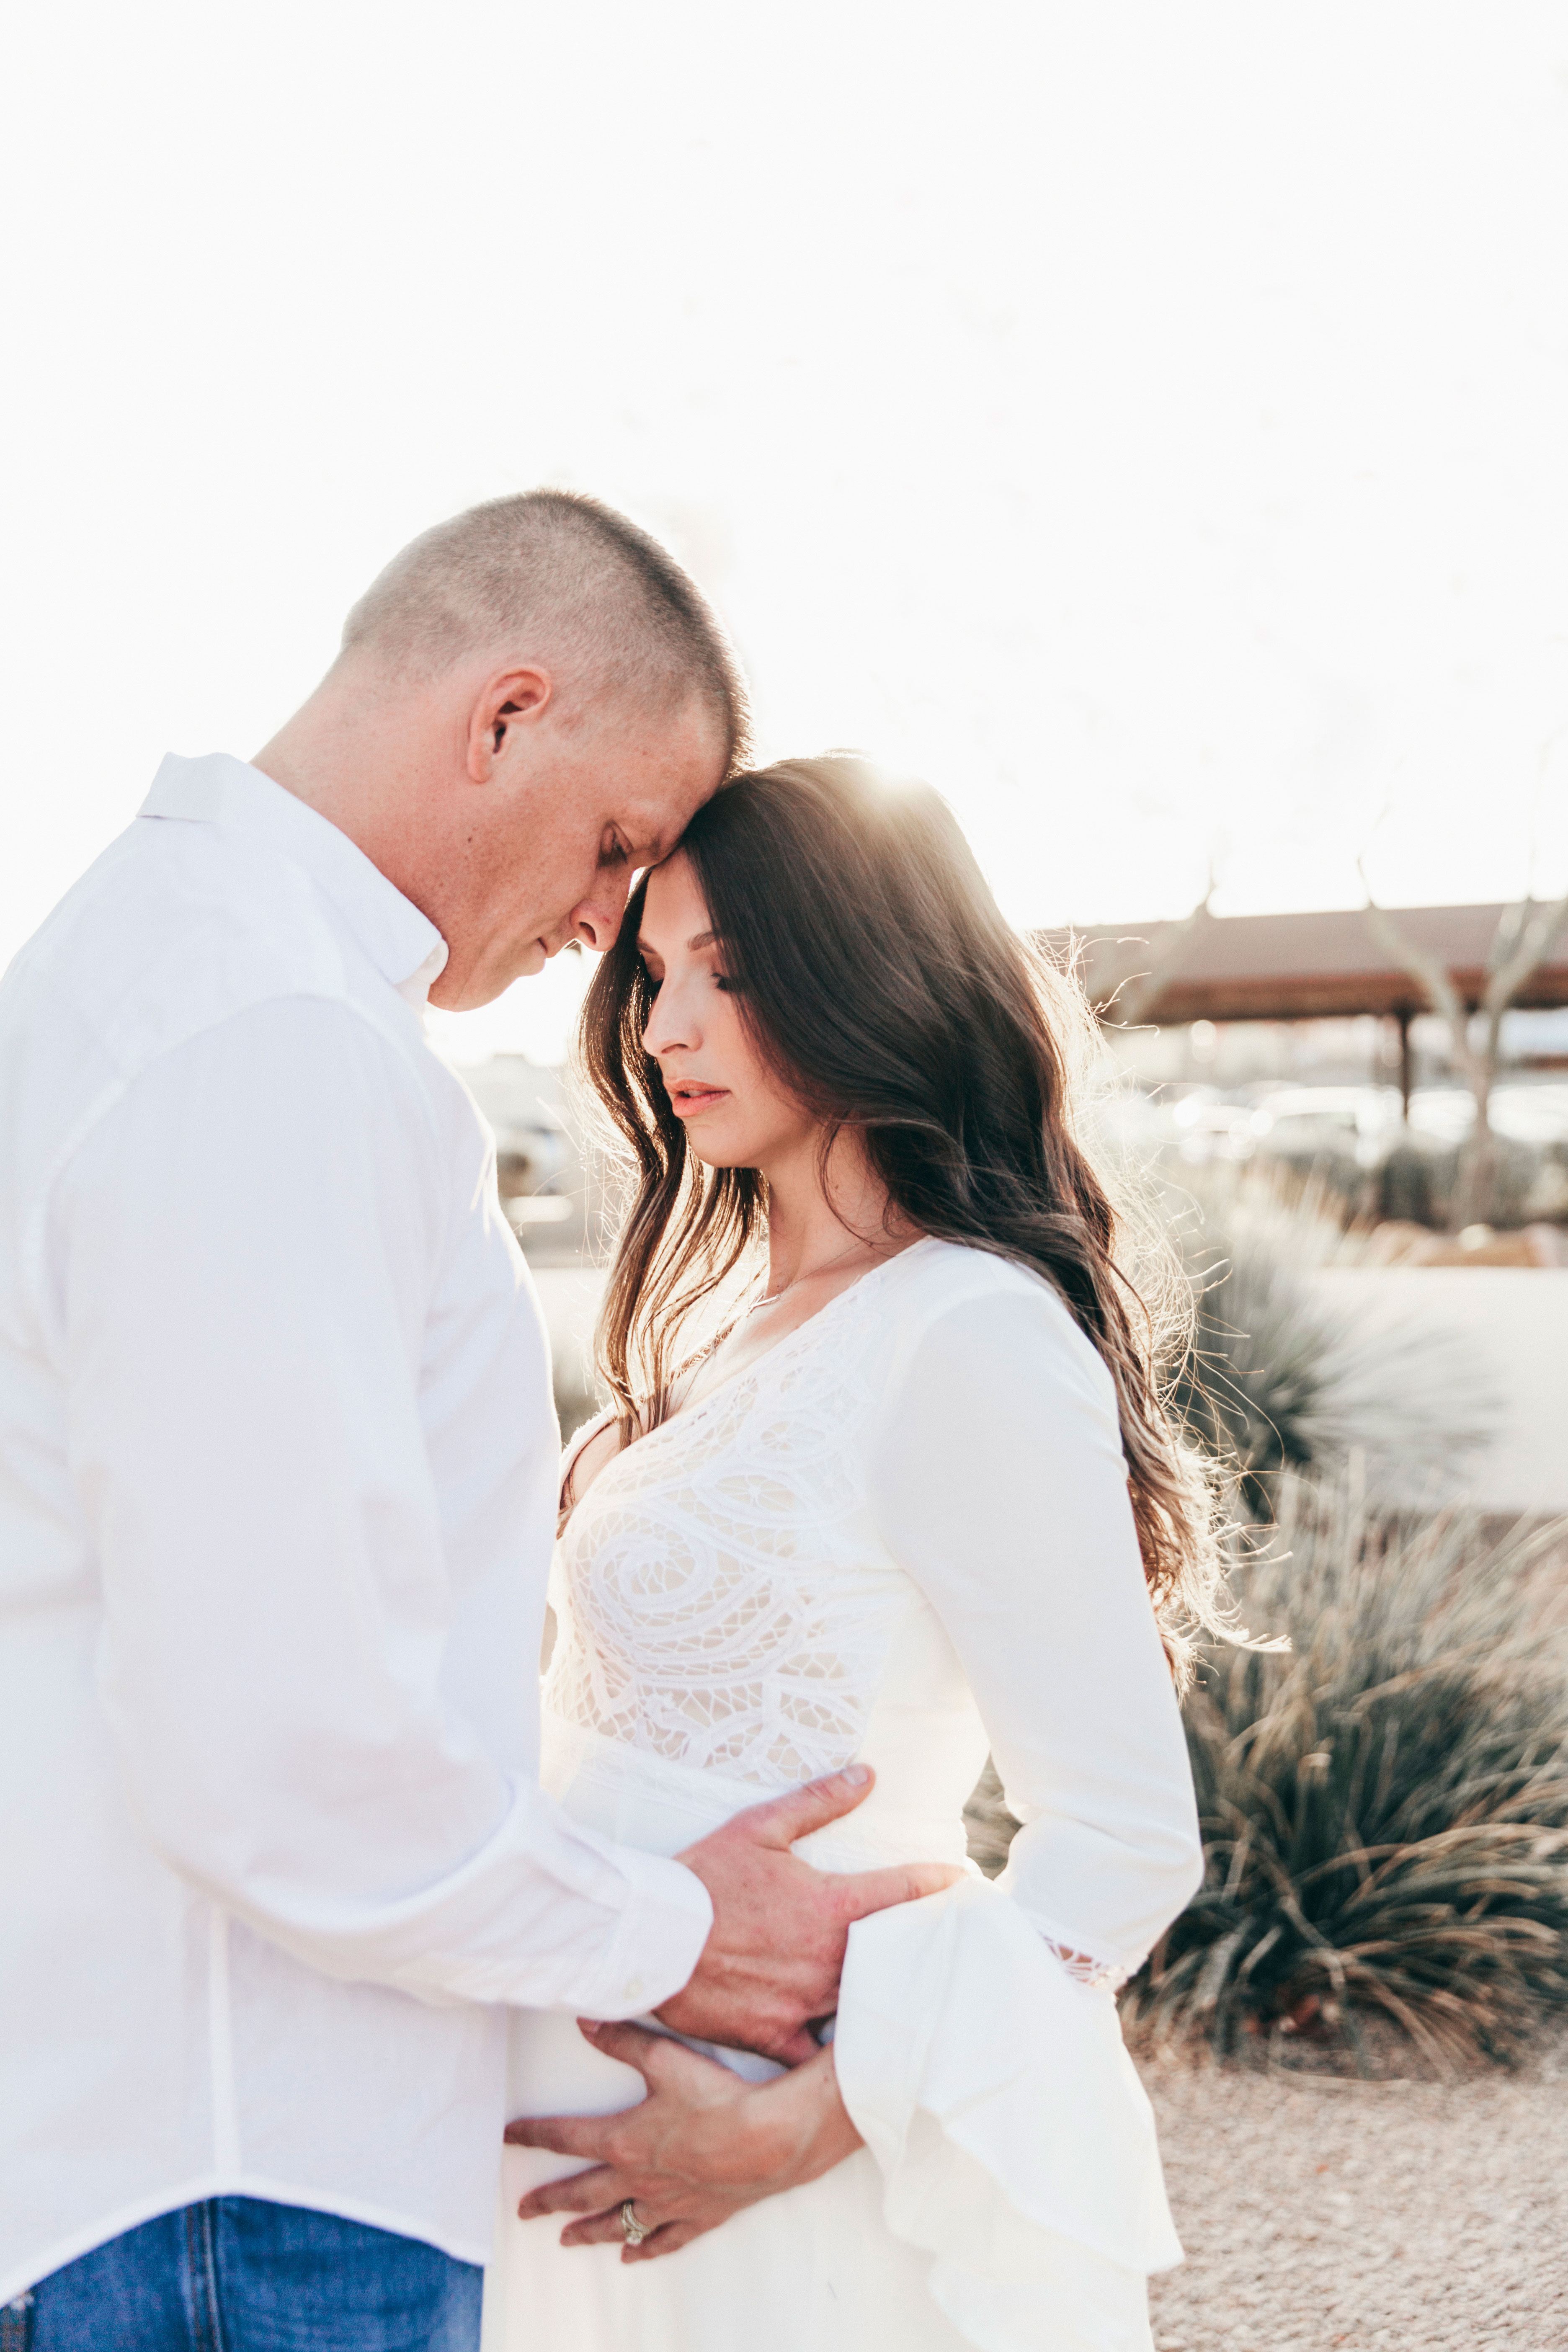 Beautiful Couple Maternity Session at Old Town Mission Scottsdale with Kate Nelle Photography